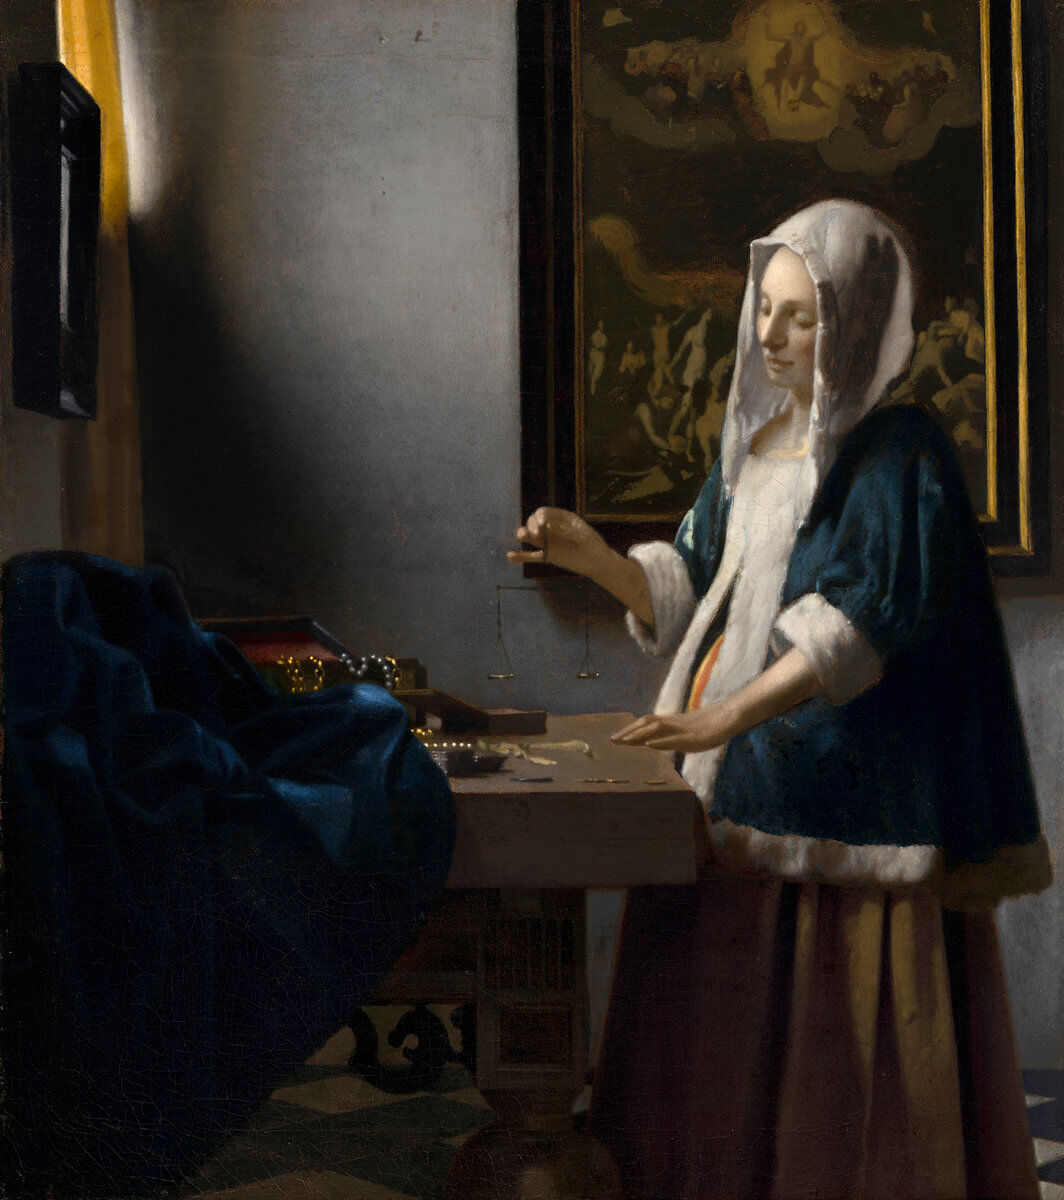 Johannes Vermeer, Woman Holding a Balance, c. 1664. Courtesy of the National Gallery of Art.